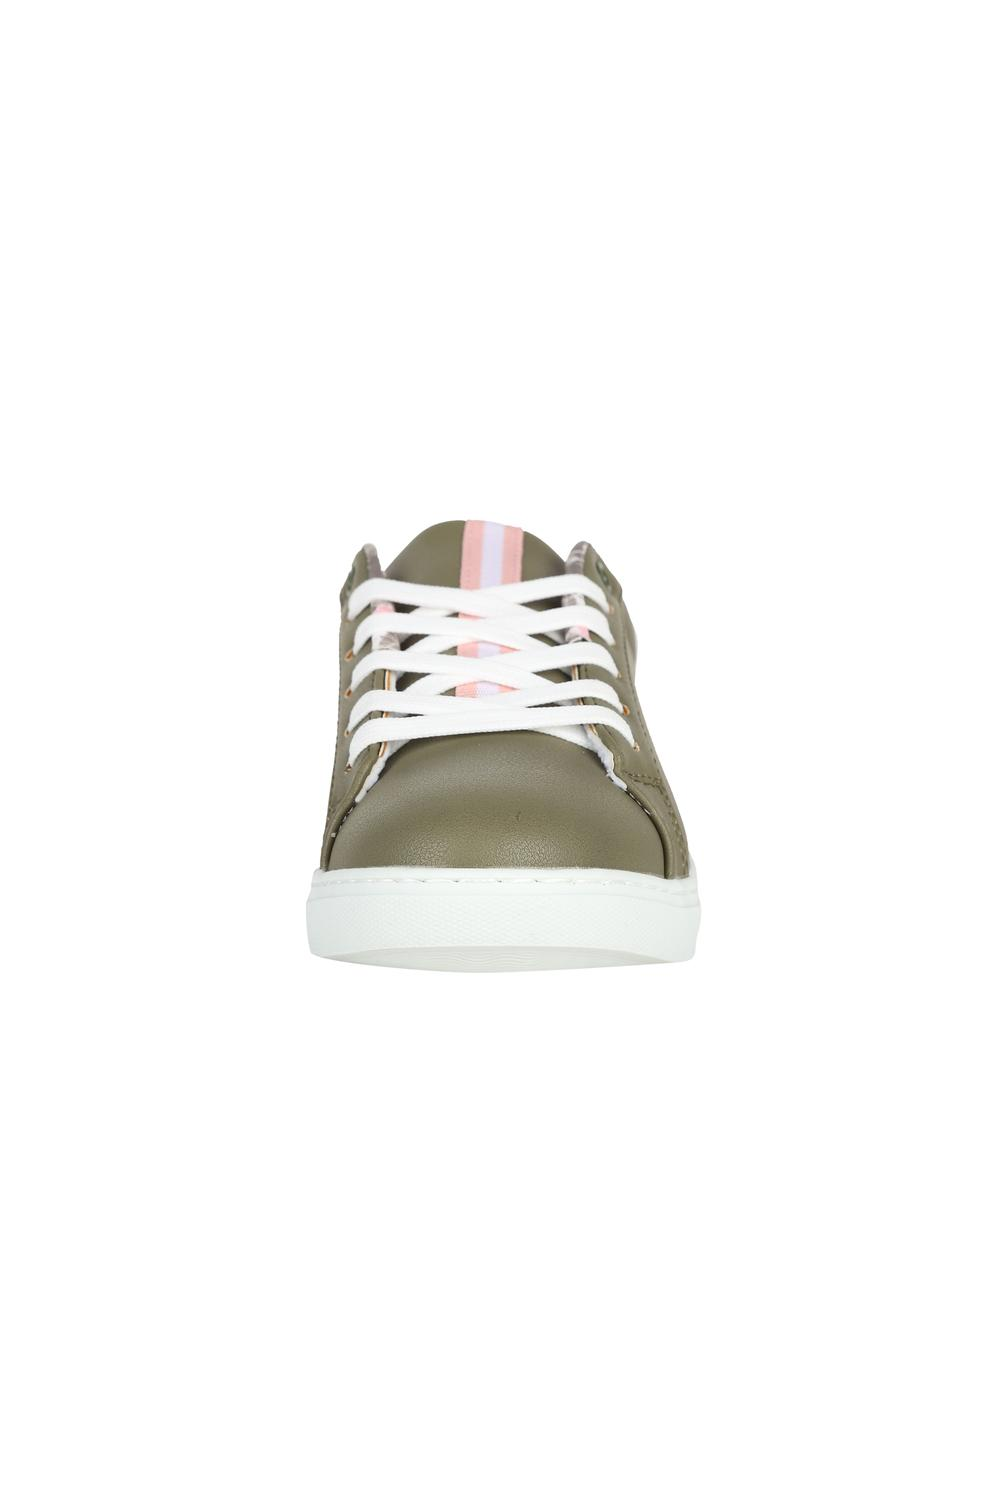 Solly Footwear, Allen Solly Olive Lace